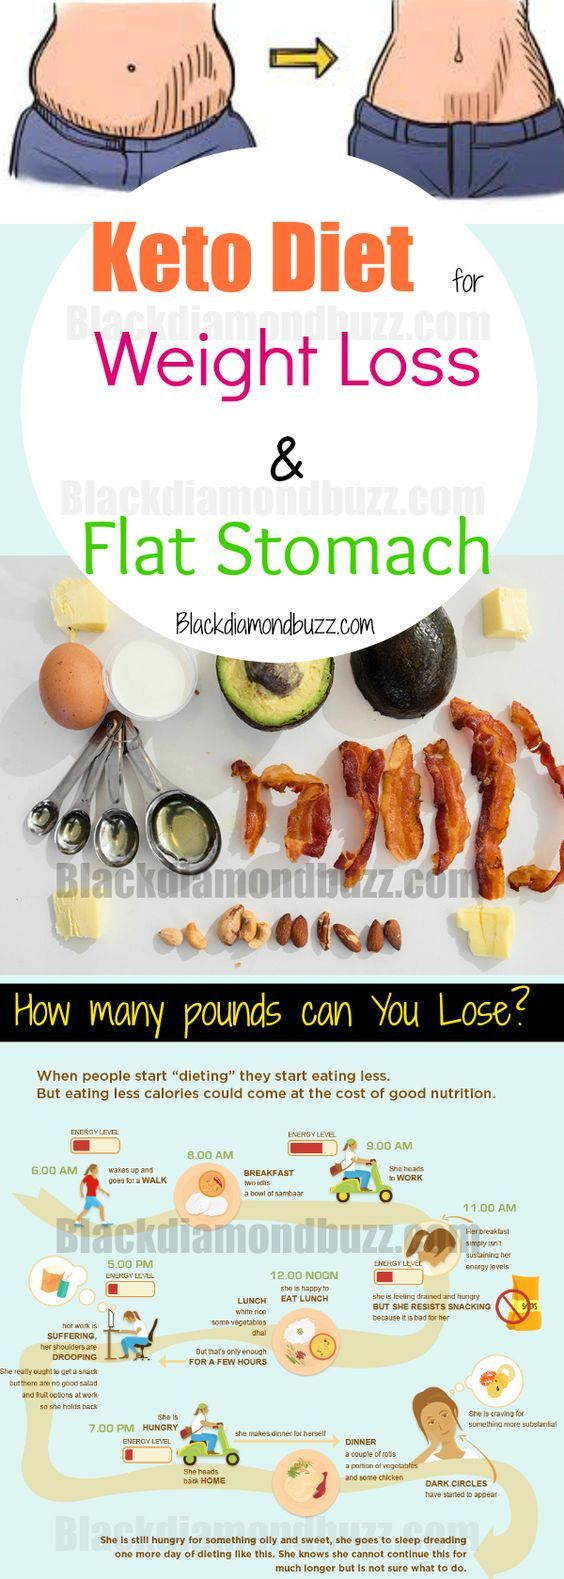 is the keto diet good for stomach